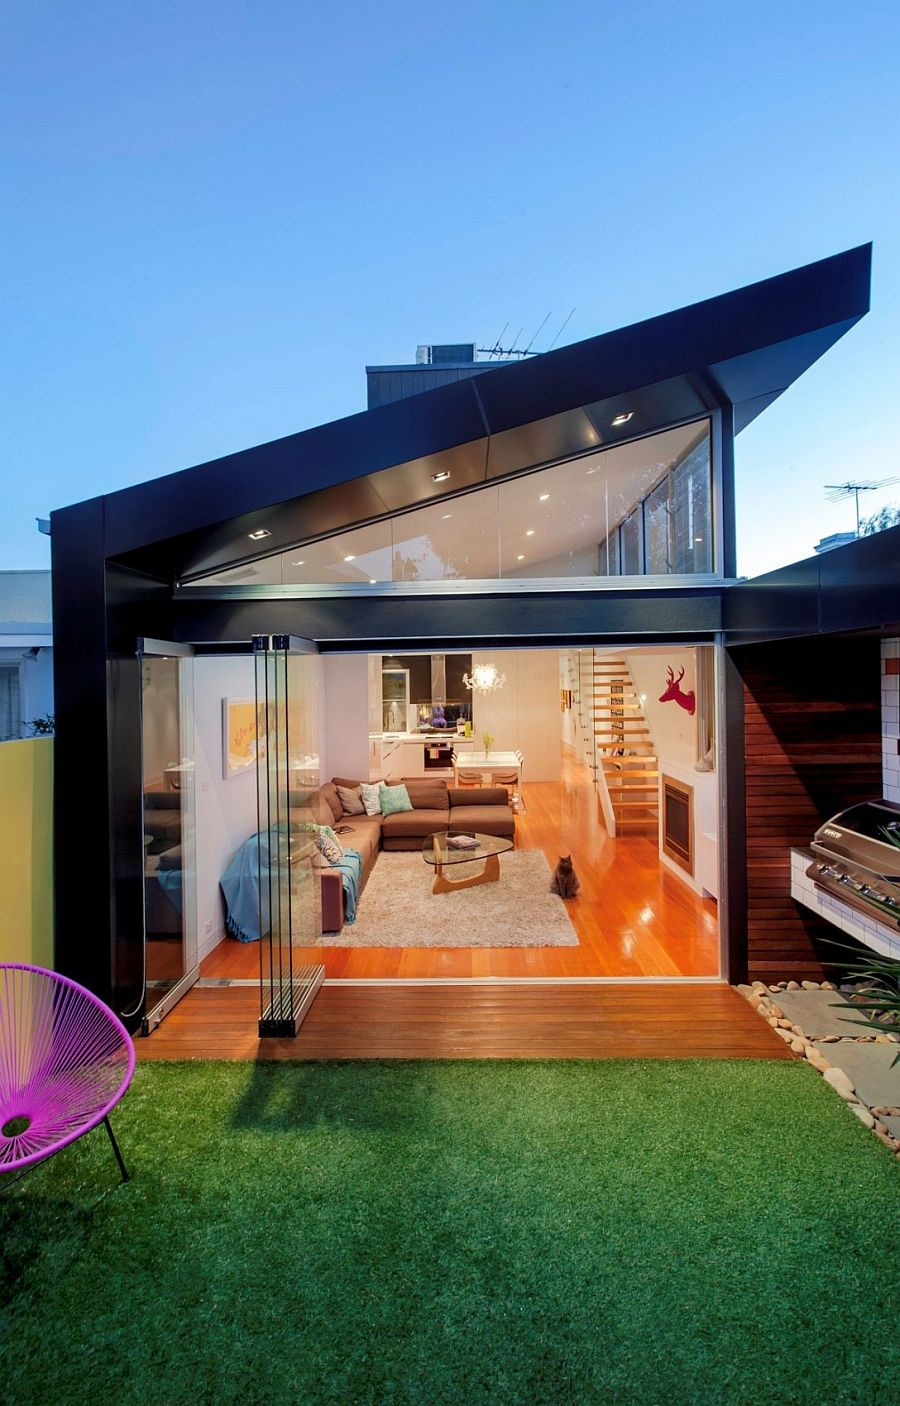 Traditional Victorian Home Transformed with a Glassy Modern